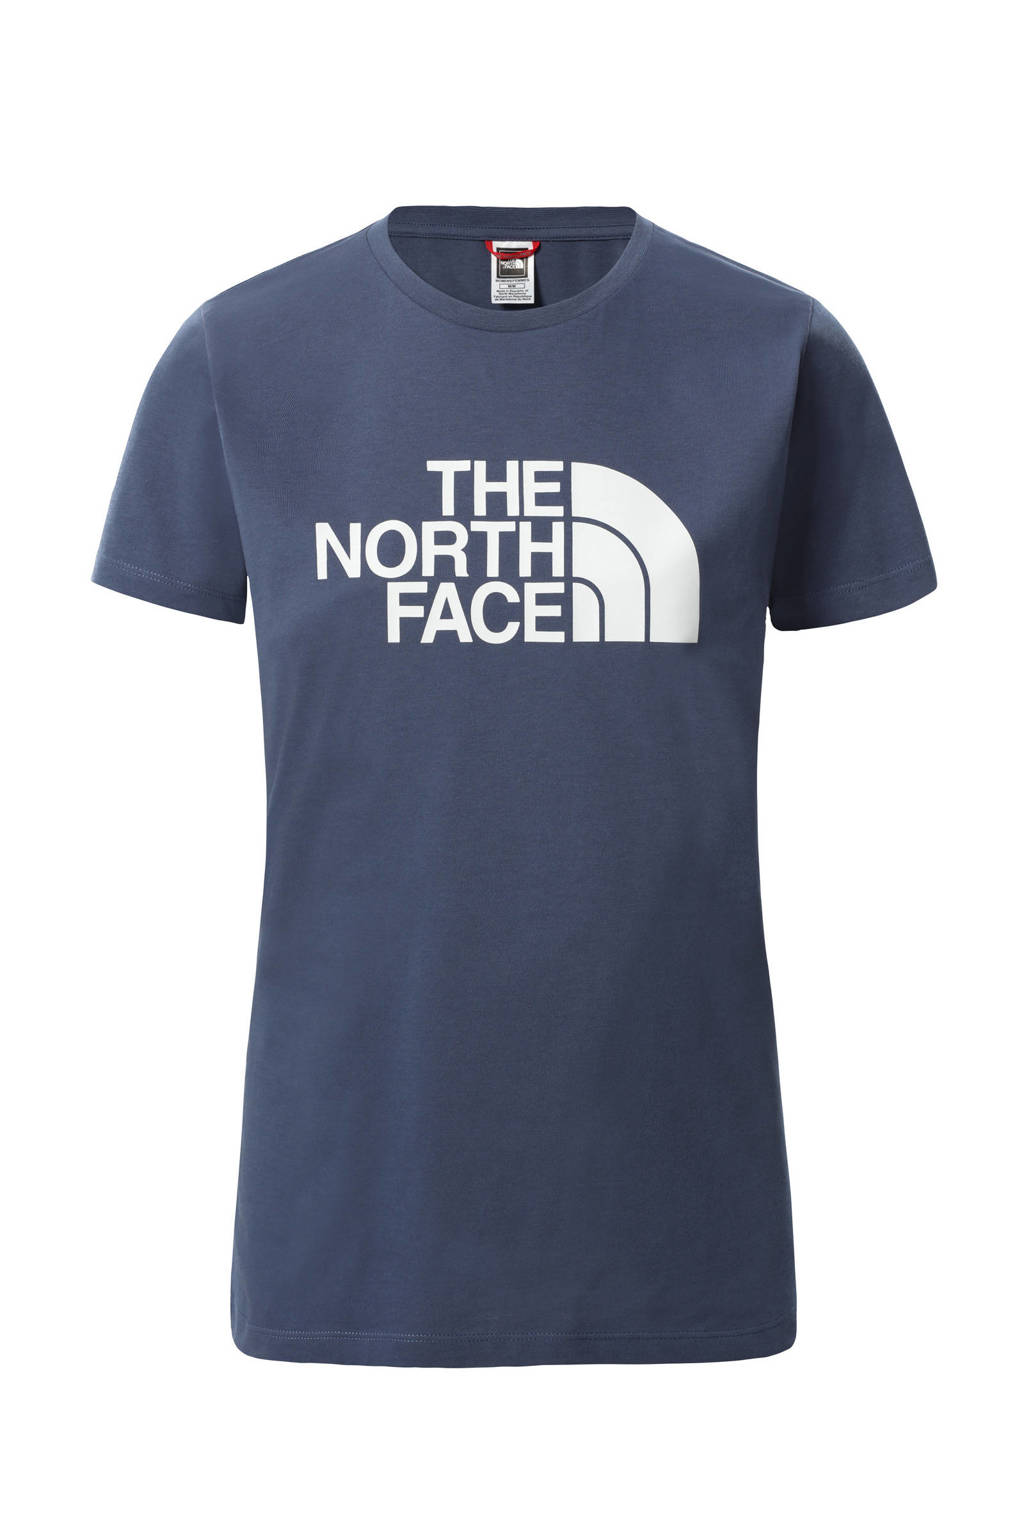 The North Face T-shirt Easy blauw/wit, Blauw/wit